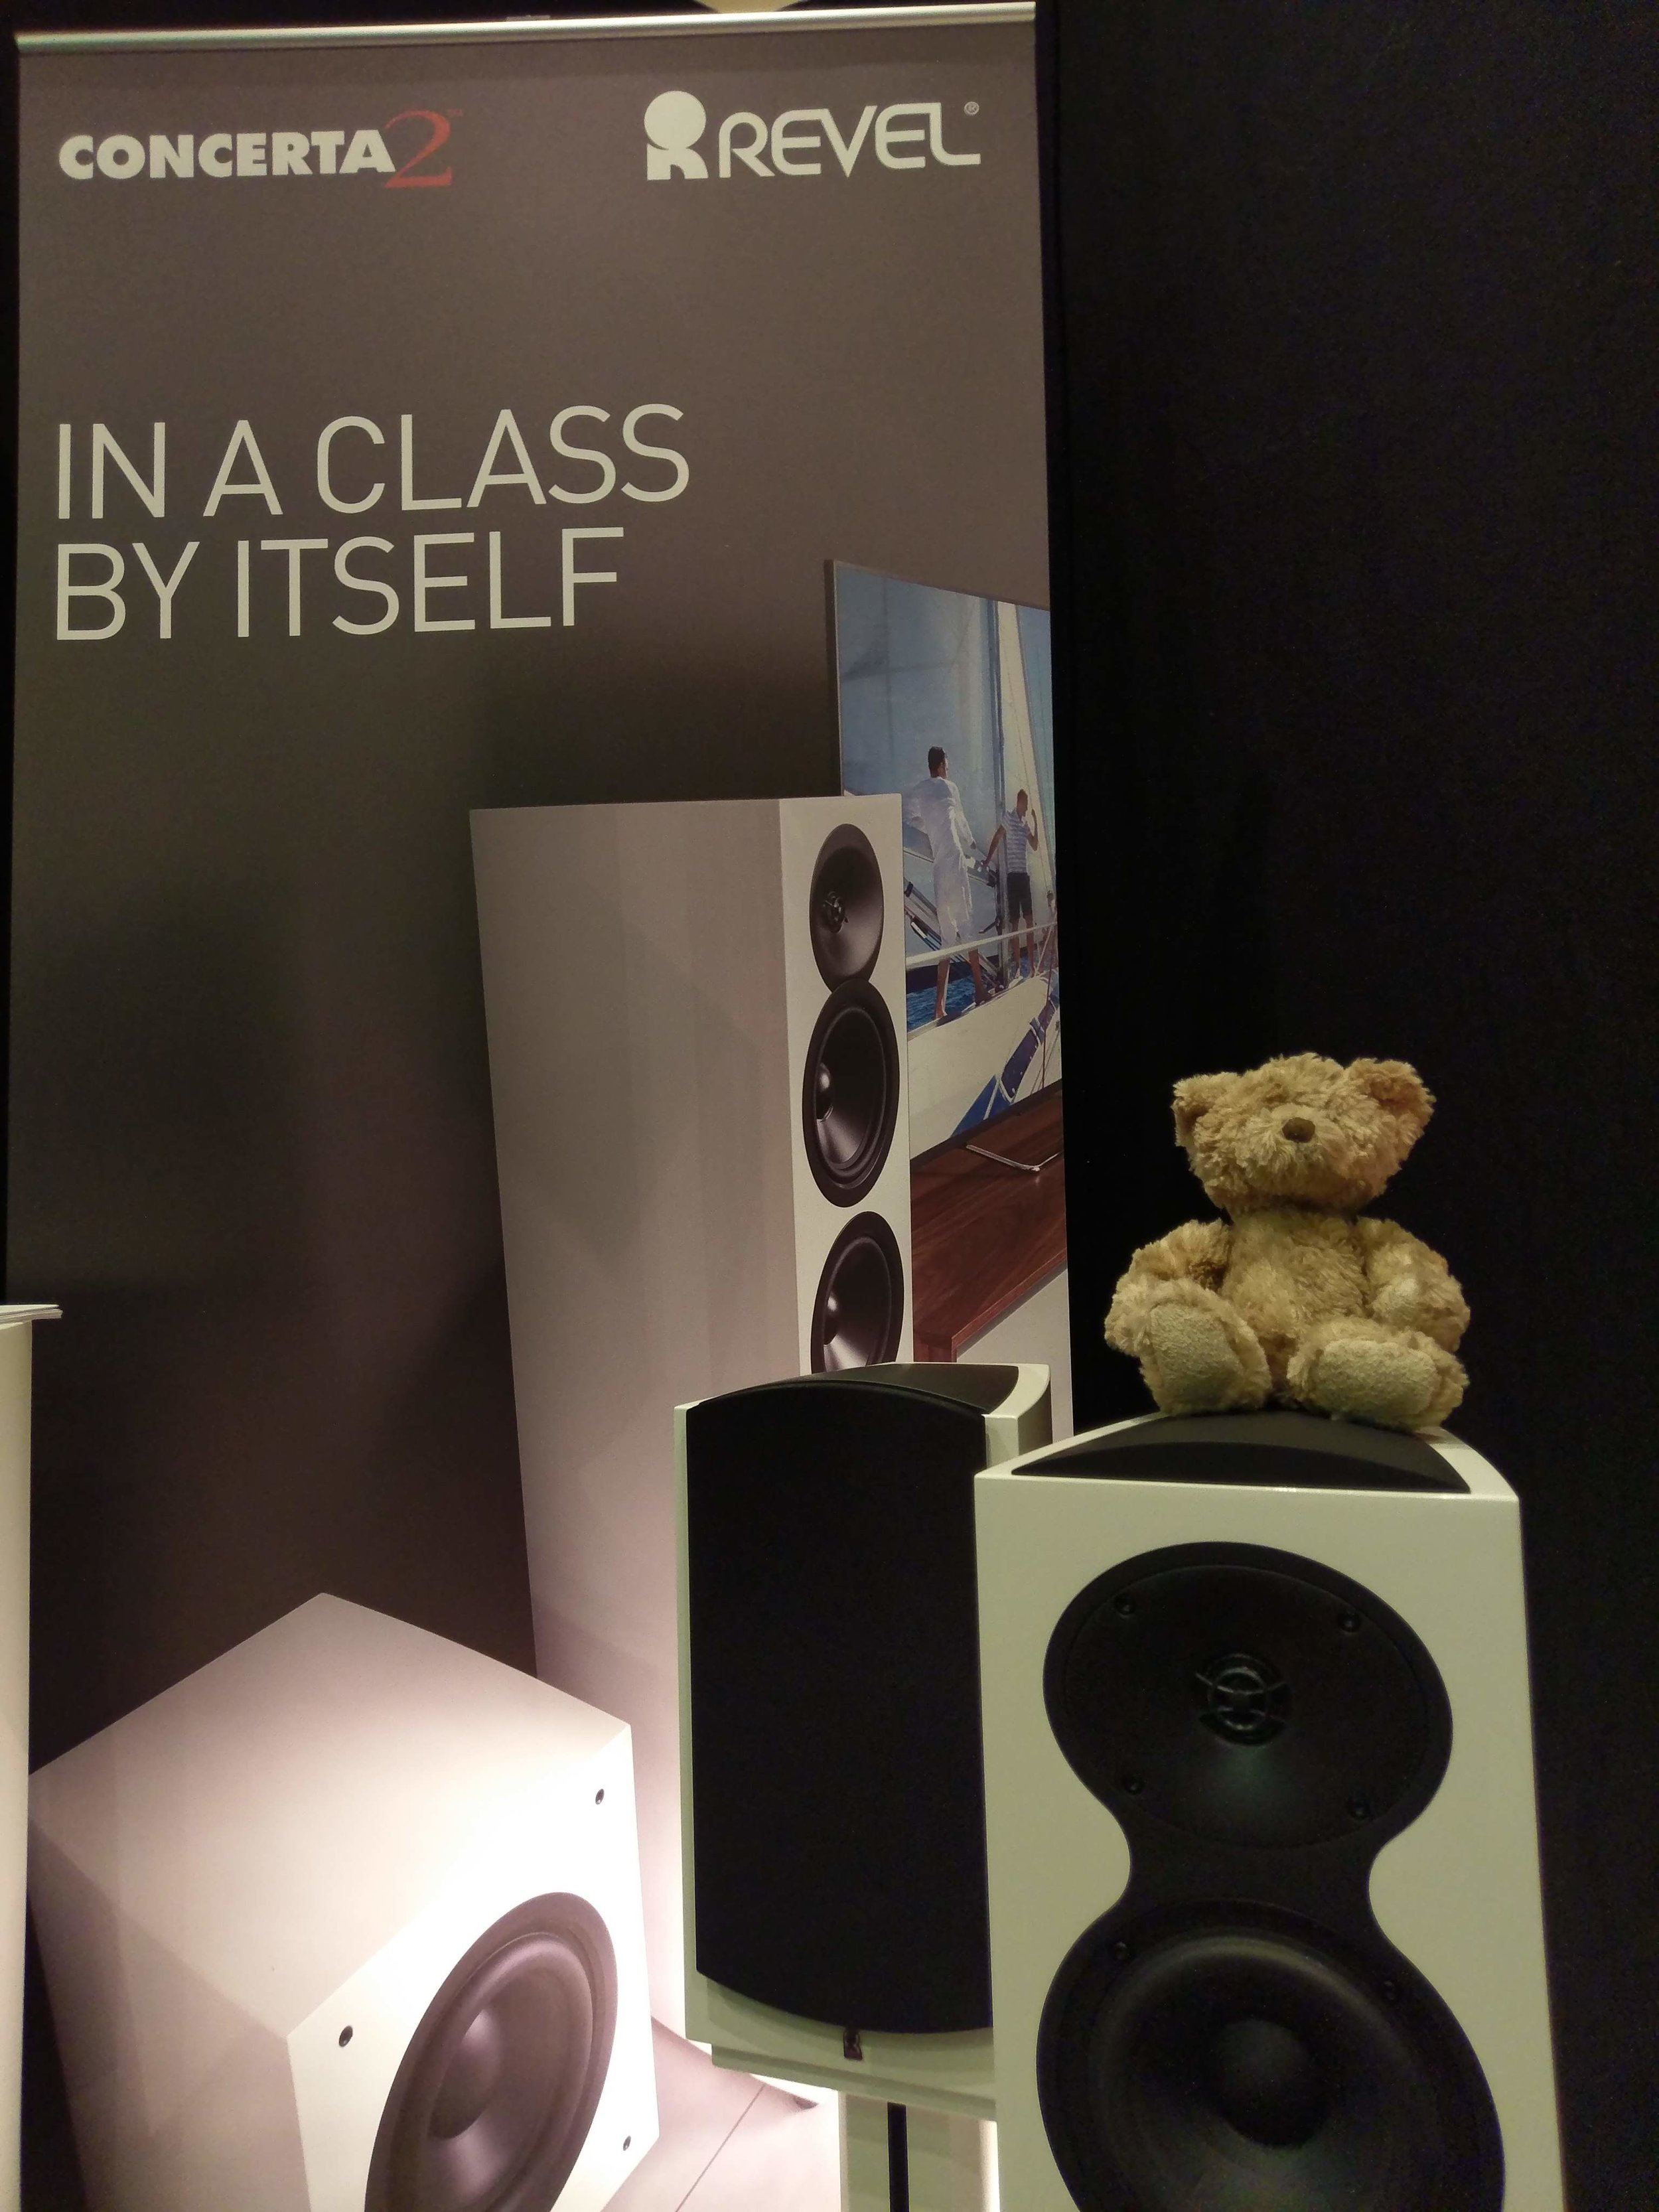 Revel are now being handled in the UK by Arcam alongside Mark Levinson as part of Harman Luxury Audio.